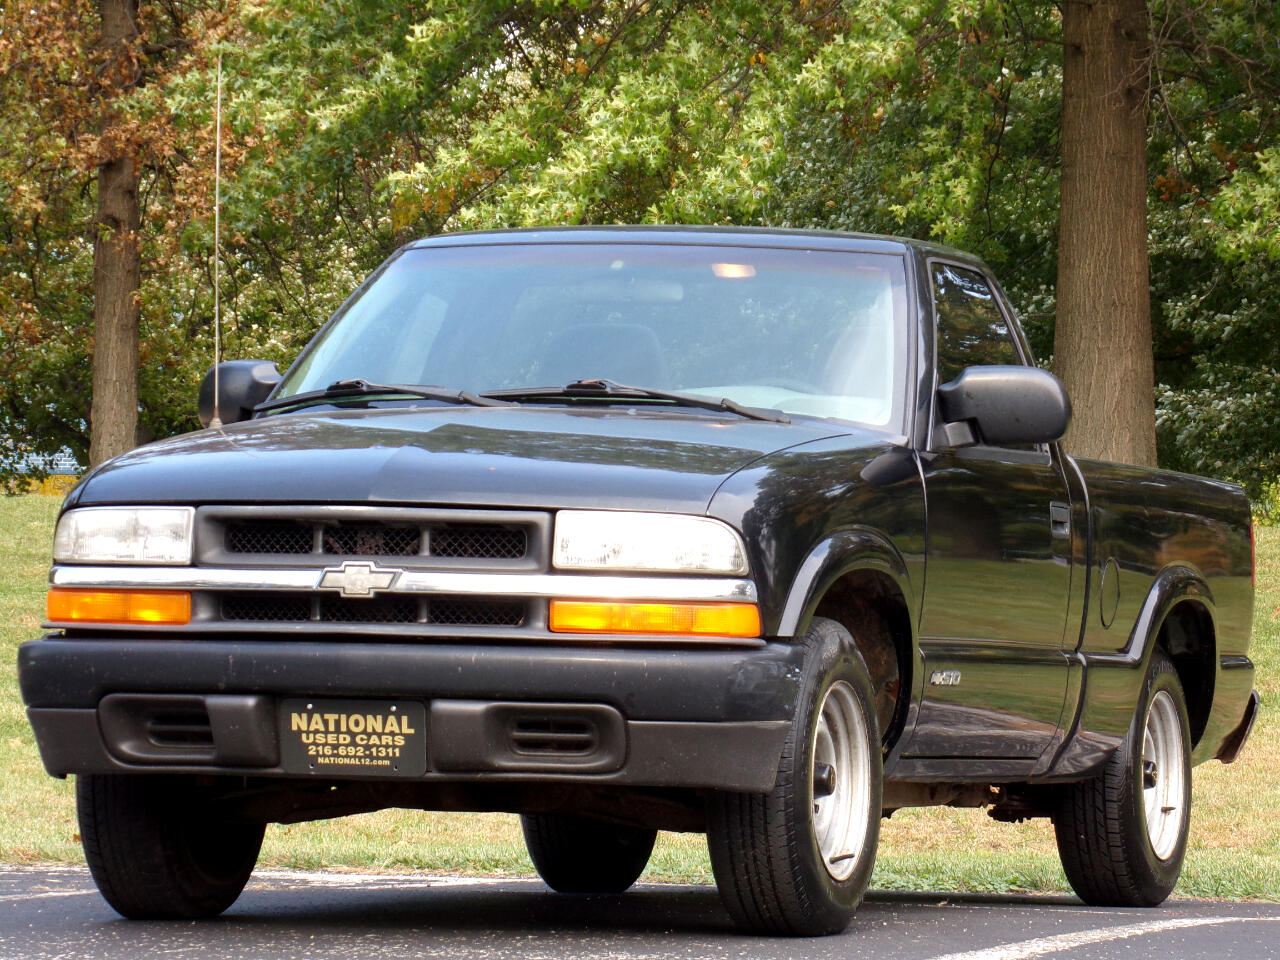 Used 2000 Chevrolet S10 Pickup Short Bed 2wd For Sale In Cleveland Oh 44110 National Used Cars Inc